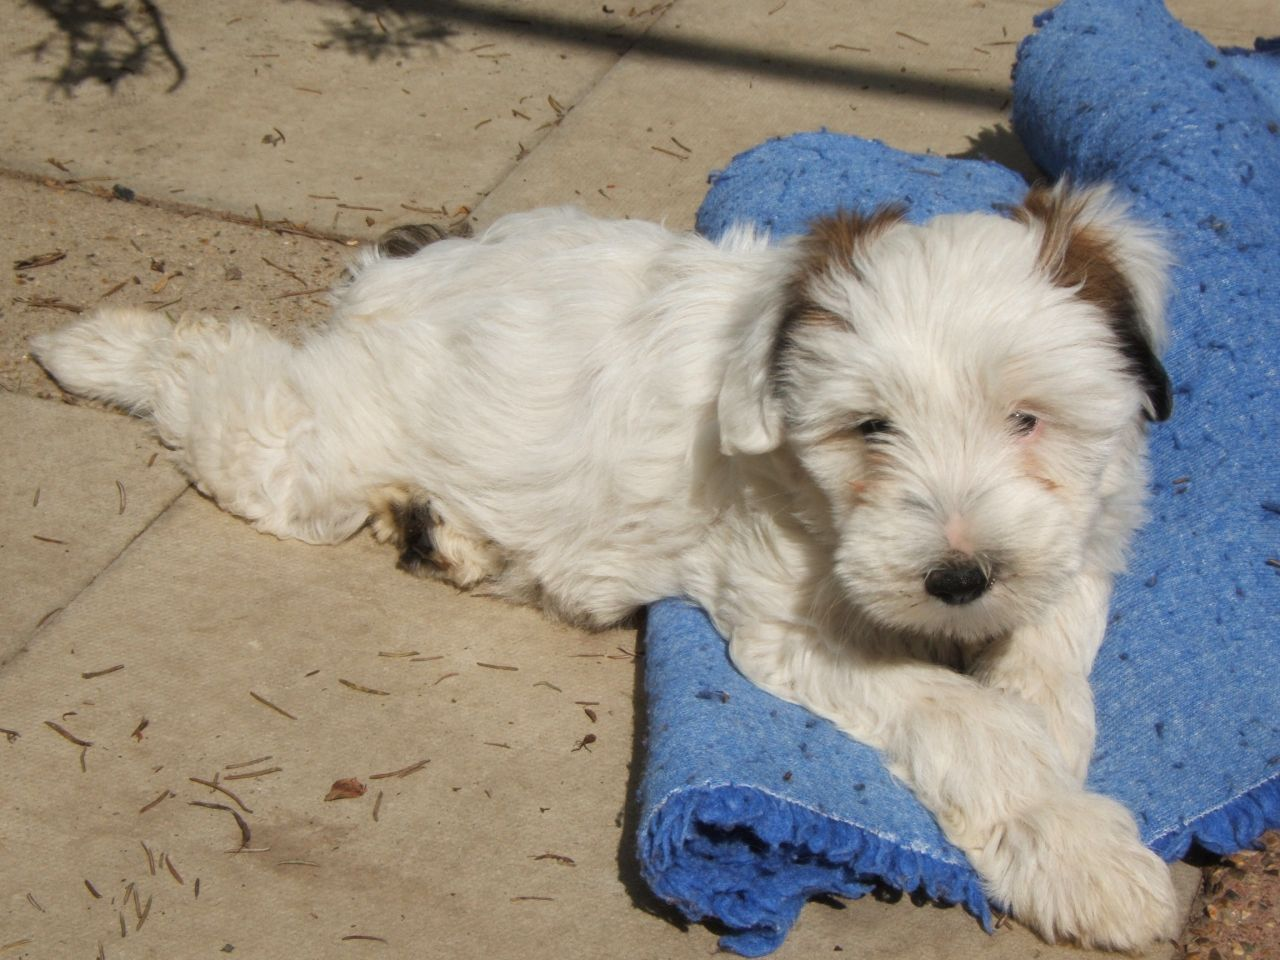 Tibetan Terrier Puppies: Tibetan Tibetan Terrier Puppies For Sale Horsham Breed